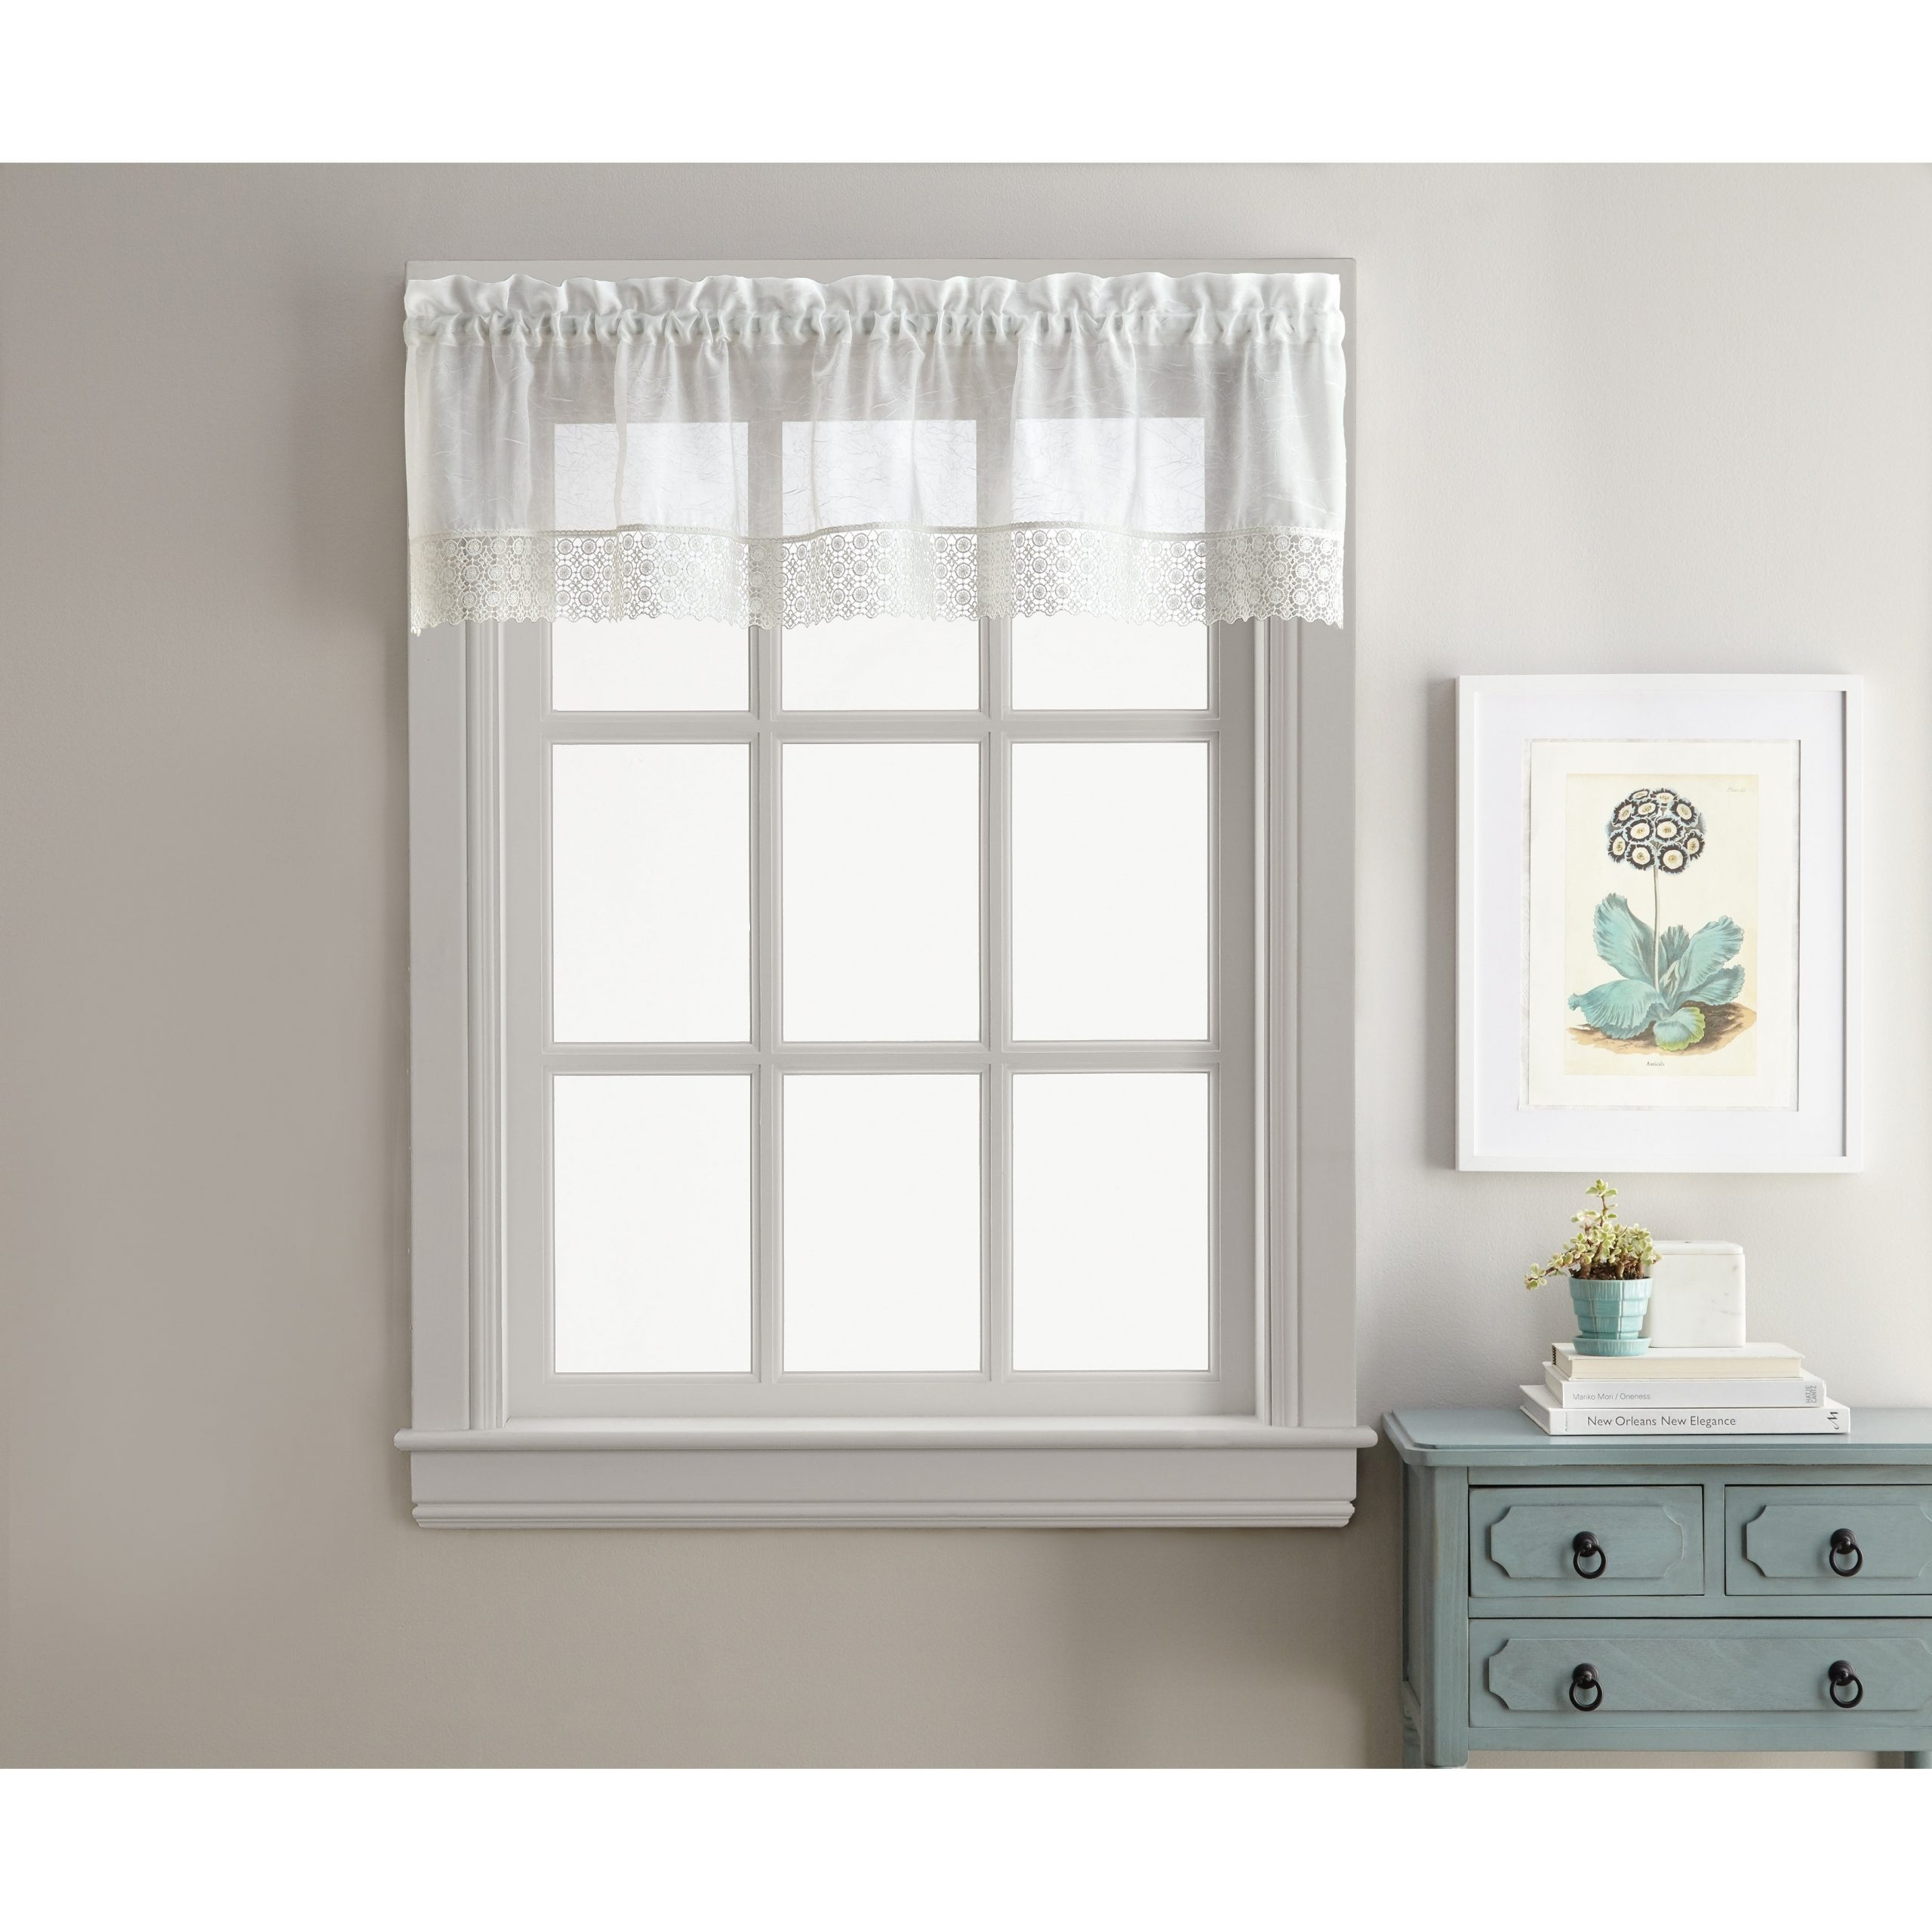 Sweet Adele White Tailored Valance And Tier Pair Curtain Collection Within White Tone On Tone Raised Microcheck Semisheer Window Curtain Pieces (View 9 of 20)